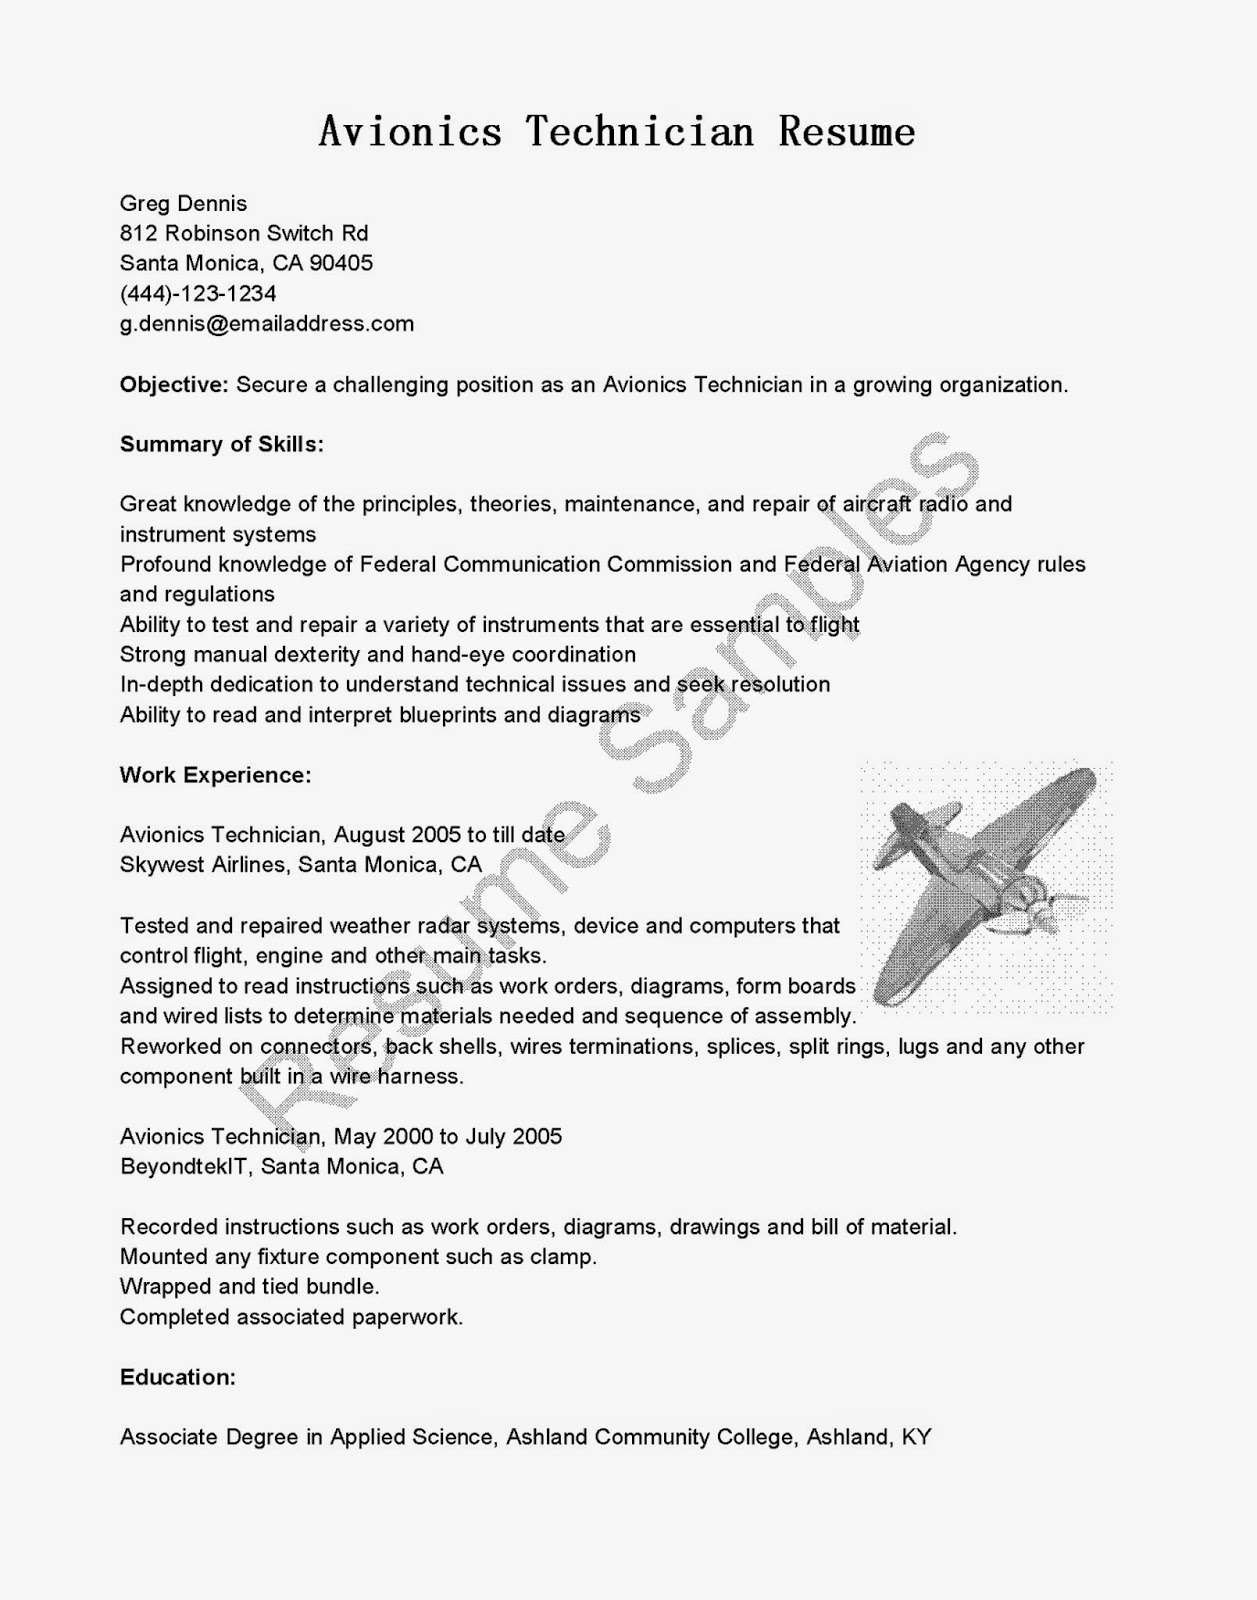 avionics technician resume sample avionics resume - Avionics Technician Resume